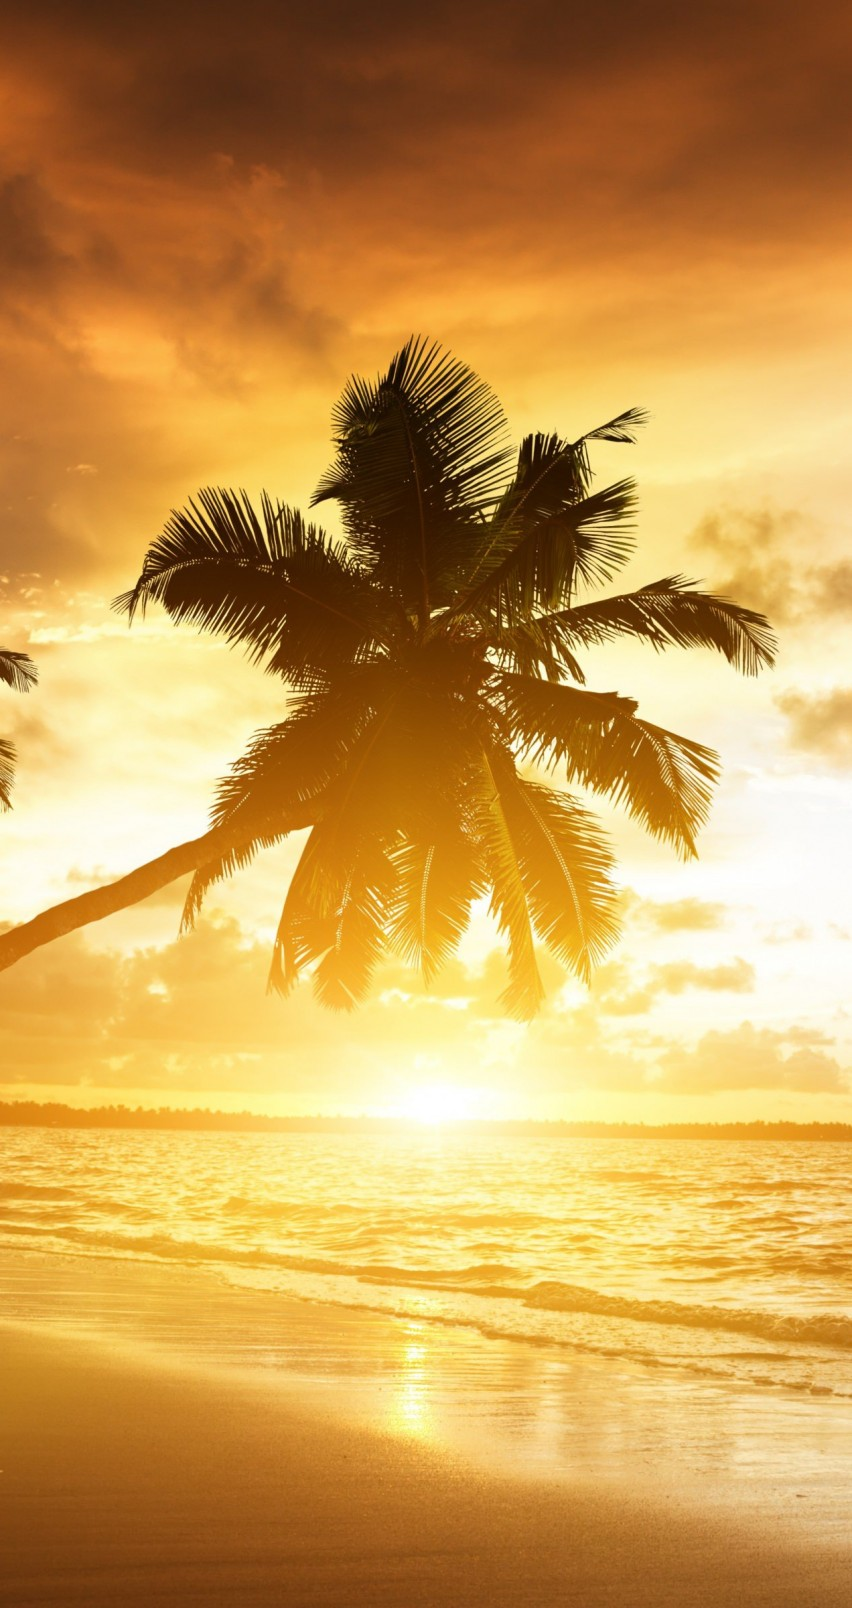 Beach With Palm Trees At Sunset Wallpaper for Apple iPhone 6 / 6s